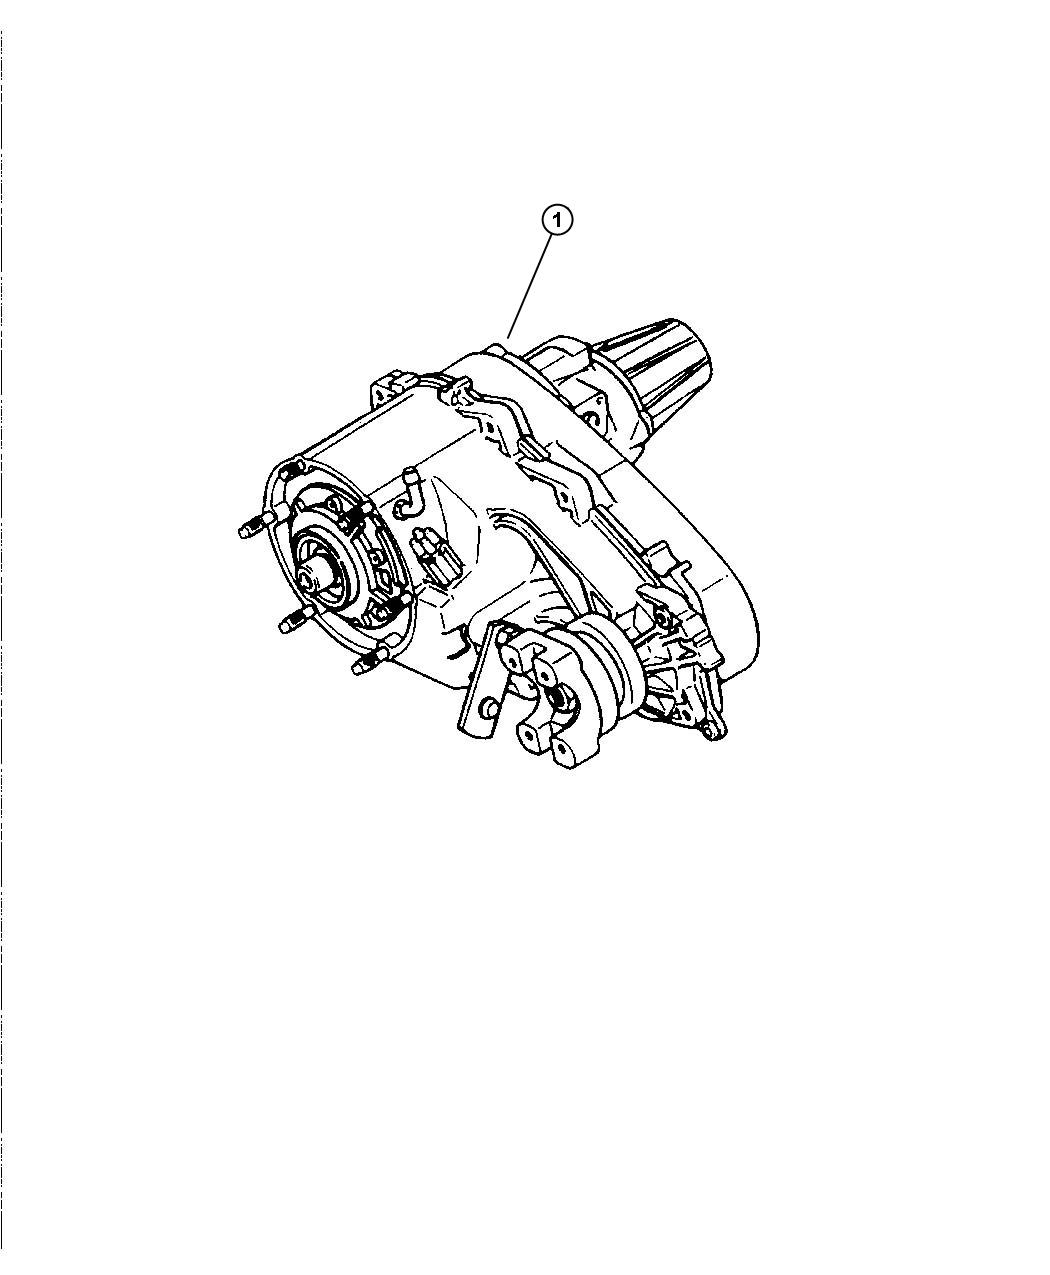 Jeep Liberty Transfer Case Np242 Relabel Trac